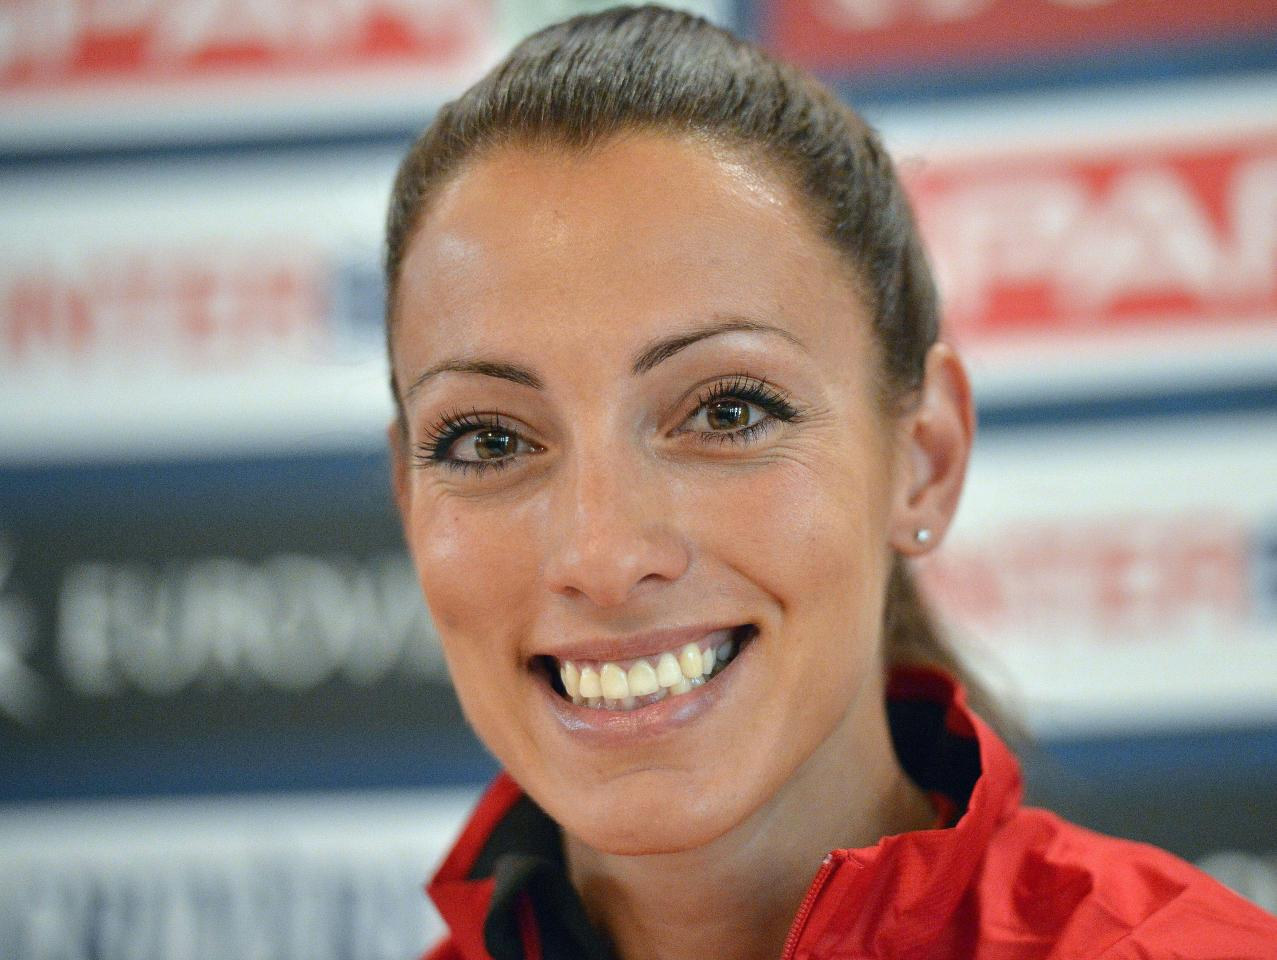 Bulgaria's sprinter Ivet Lalova smiles during a press conference at the European Athletics Championships in Helsinki, Finland, Tuesday, June 26, 2012. (AP Photo/Martin Meissner)